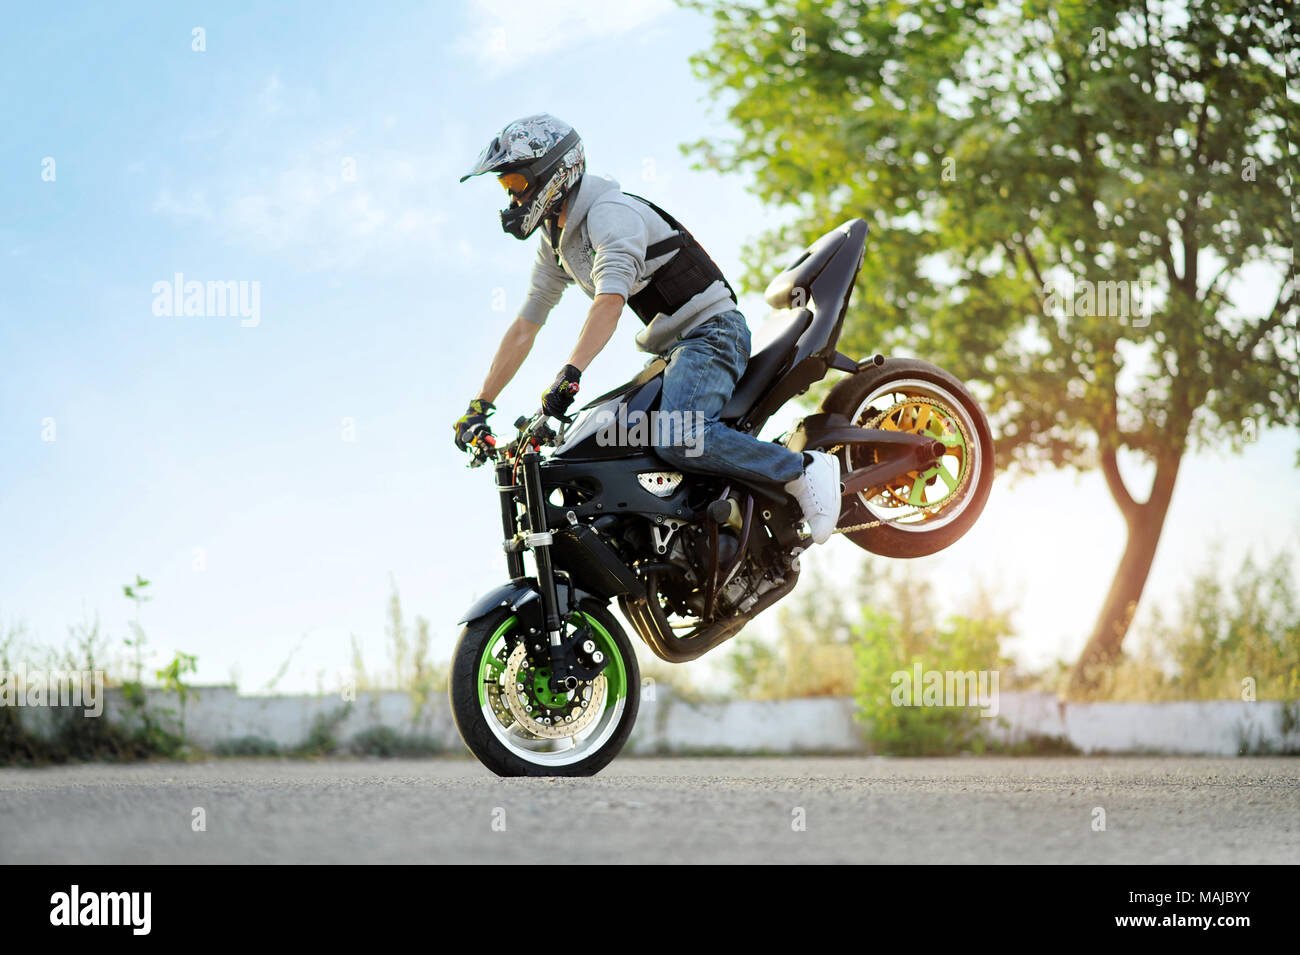 Ivano-Frankivsk, Ukraine - 28 August 2015 : Photo of biker is riding extremely on one cycle on blue summer sky and green trees background. Showing his talents and doing tricks wearing helmet. Stock Photo